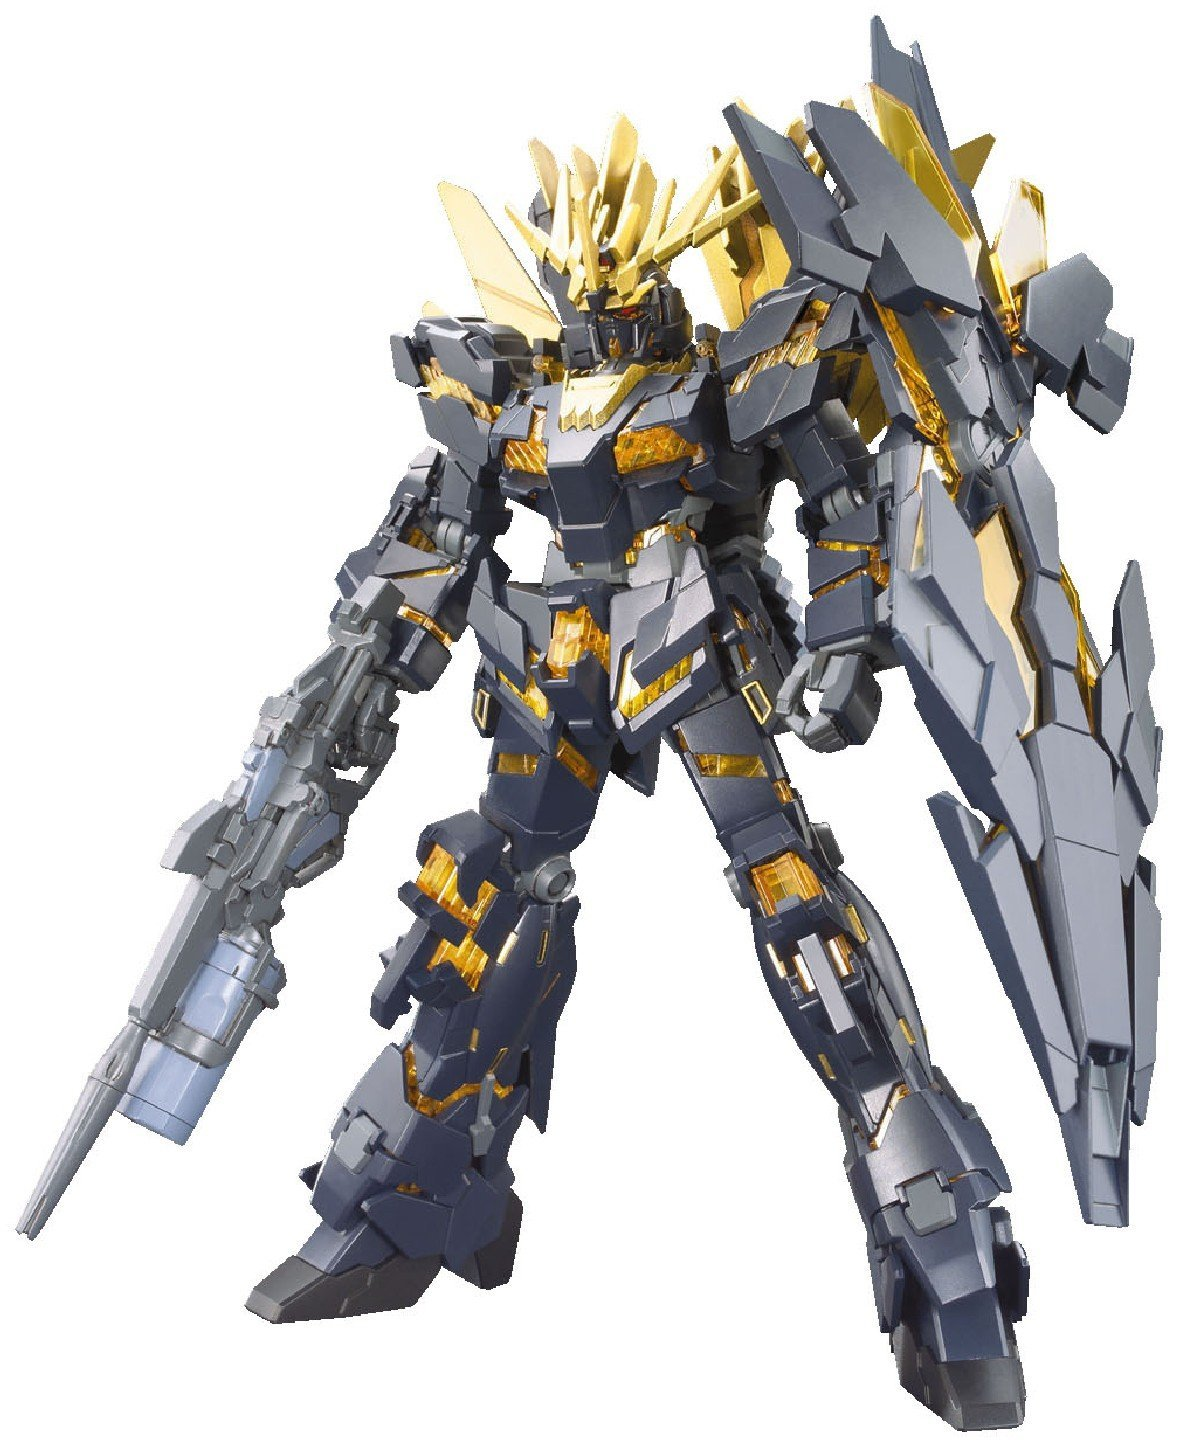 Gundam High Scale Universal Century 1/144 Scale Model Kit: #175 Banshee Norn (Destroy Mode)